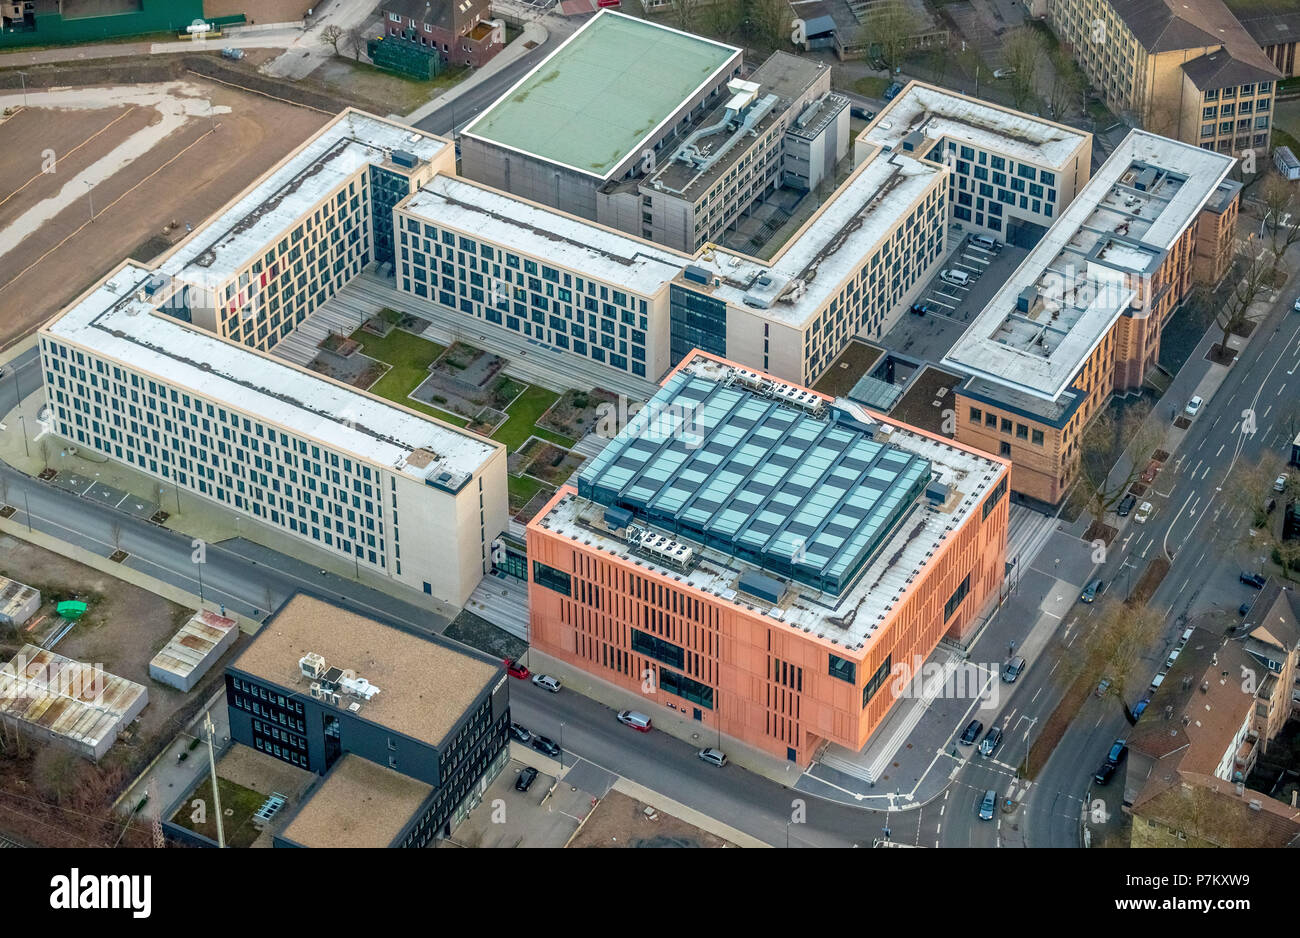 The New Justice Center on Ostring in Bochum in the state of North Rhine-Westphalia. The new buildings will be inaugurated shortly, Bochum, Ruhrgebiet, North Rhine-Westphalia, Germany - Stock Image